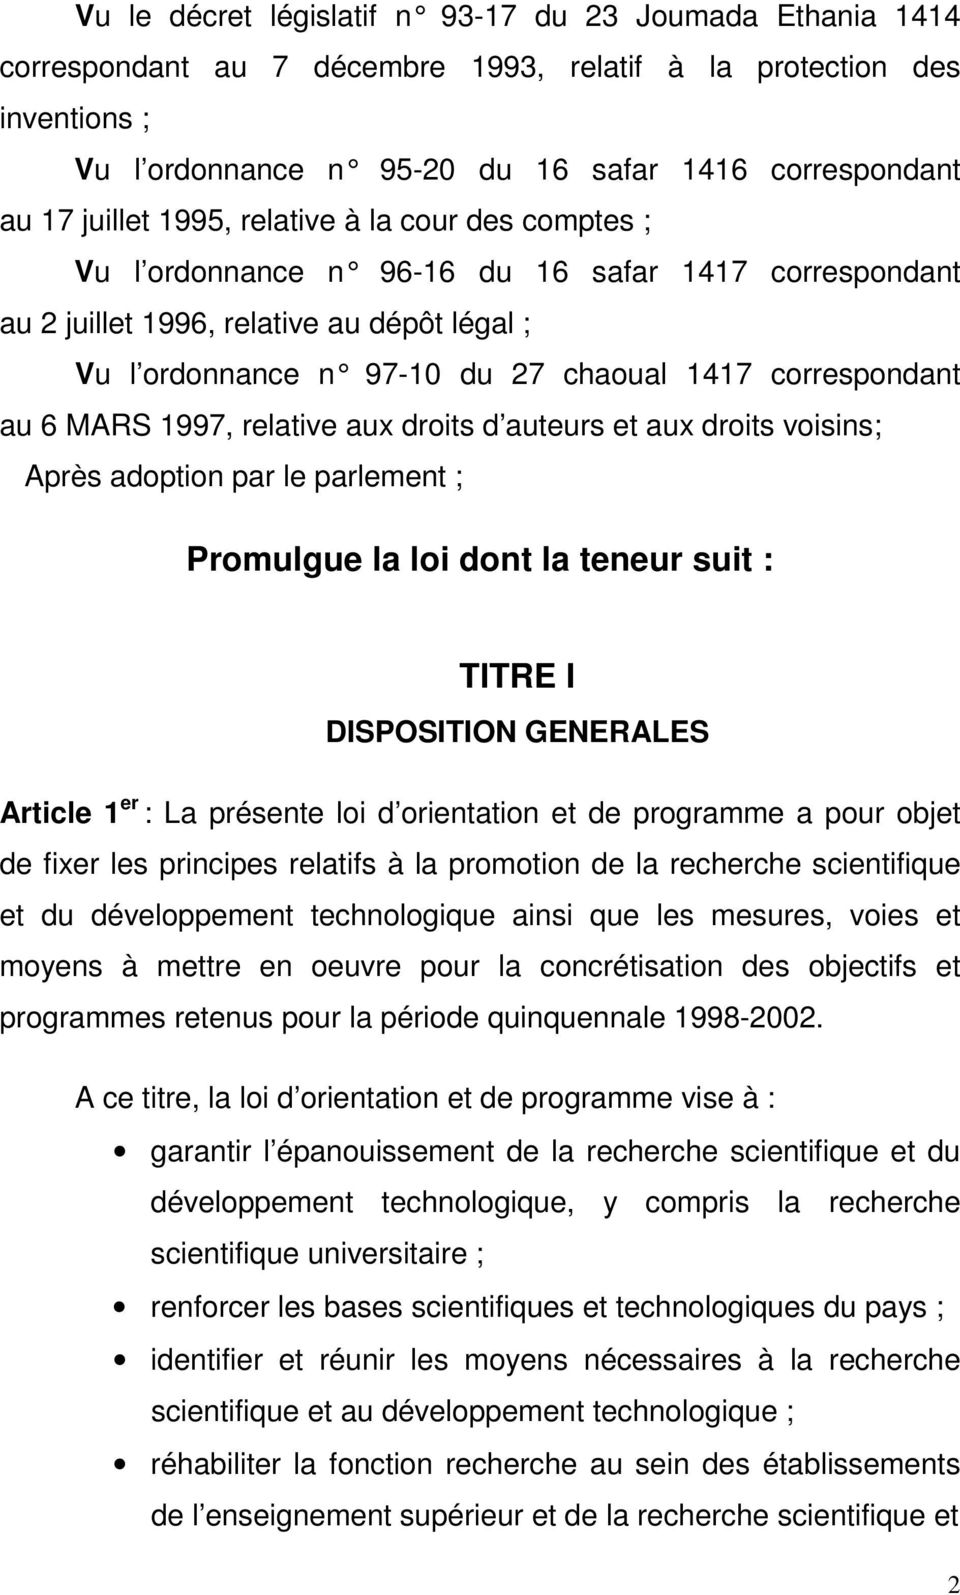 correspondant au 6 MARS 1997, relative aux droits d auteurs et aux droits voisins; Après adoption par le parlement ; Promulgue la loi dont la teneur suit : TITRE I DISPOSITION GENERALES Article 1 er